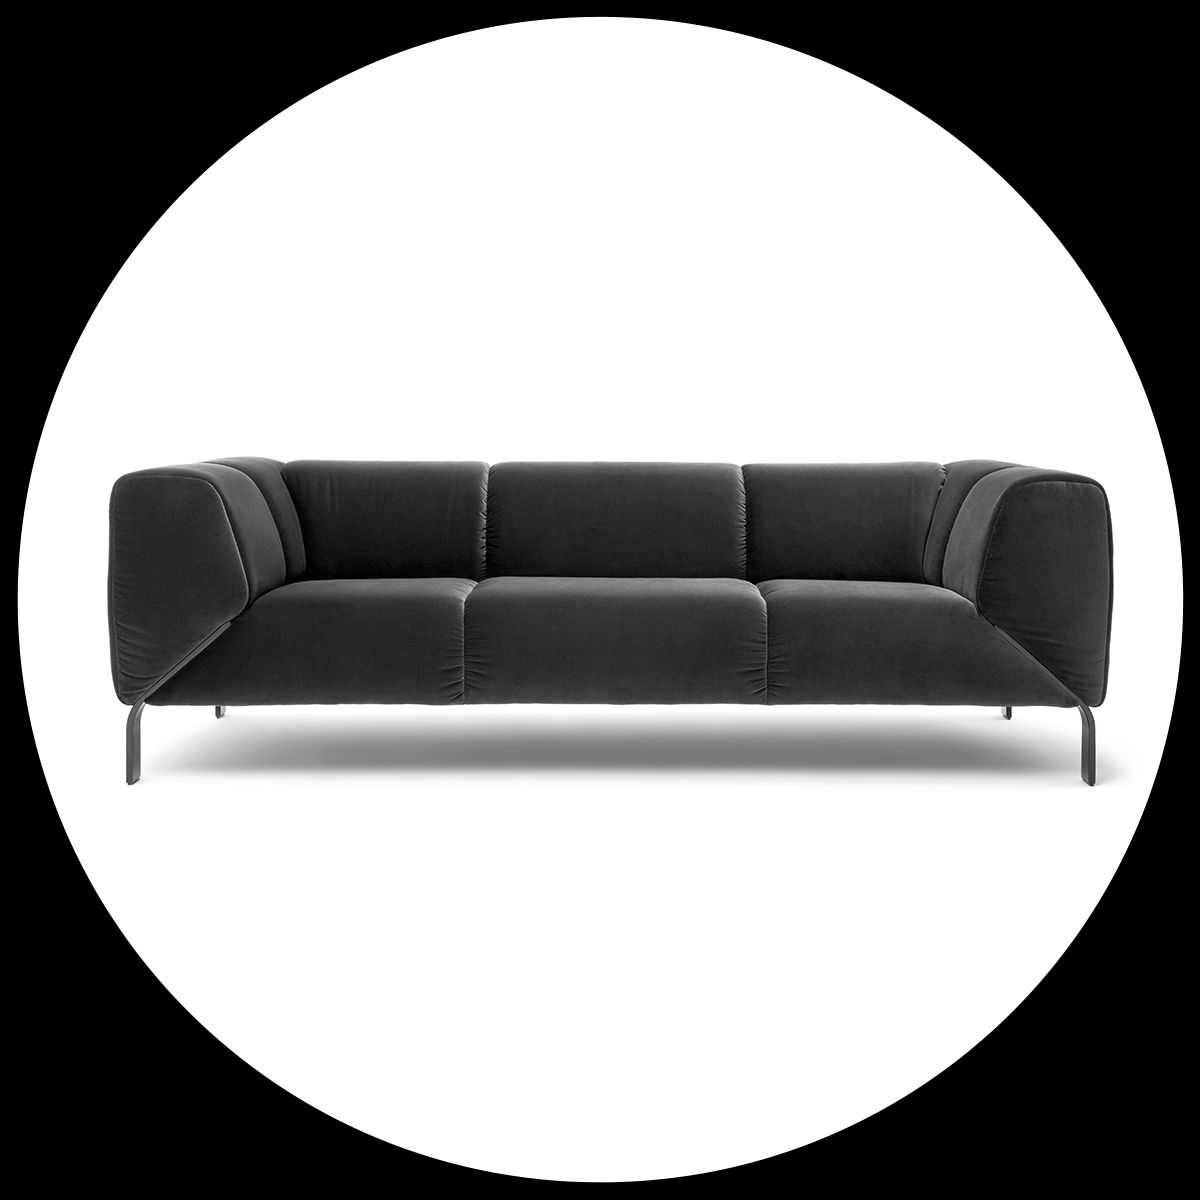 Black Is The New Black The Rolf Benz 323 Sofa